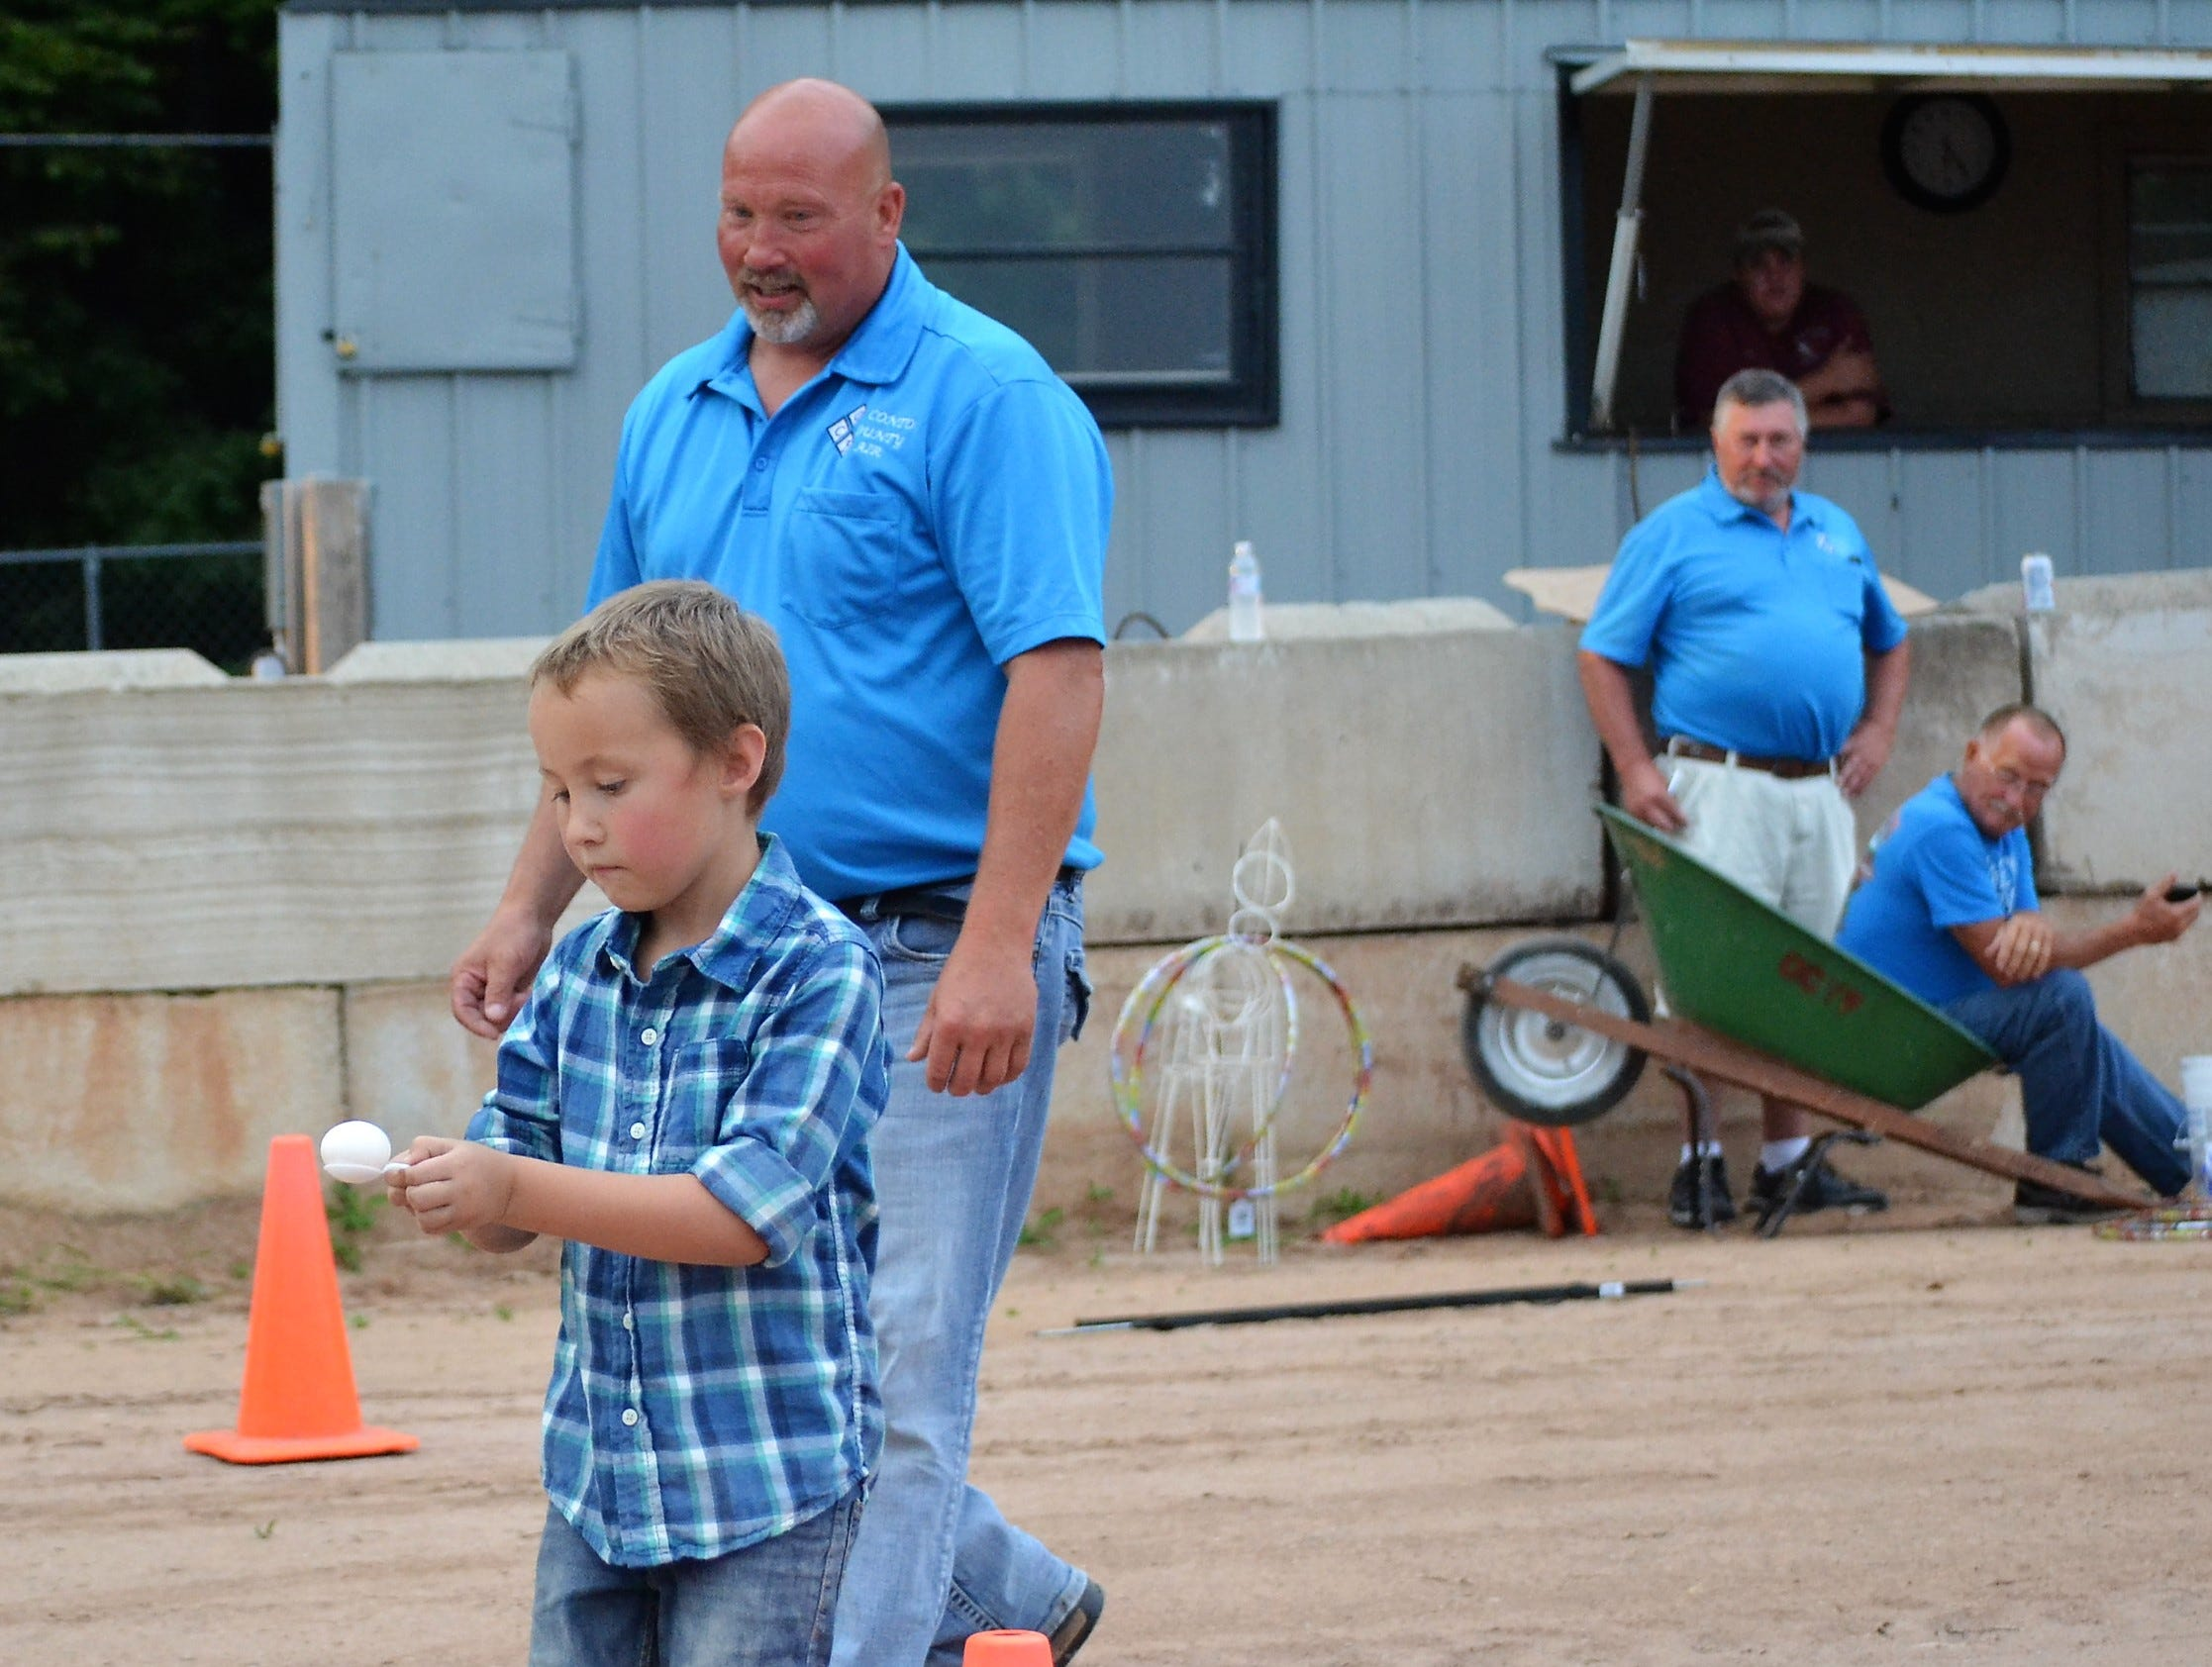 Walker School of Suring carefully carries an egg on a spoon at his negotiates cones on the track at the Oconto County  Fair on Aug. 16 in an Ag Olympics events. Behind him is Fair Board president Chris Engebretsen, left, and other fair board members.